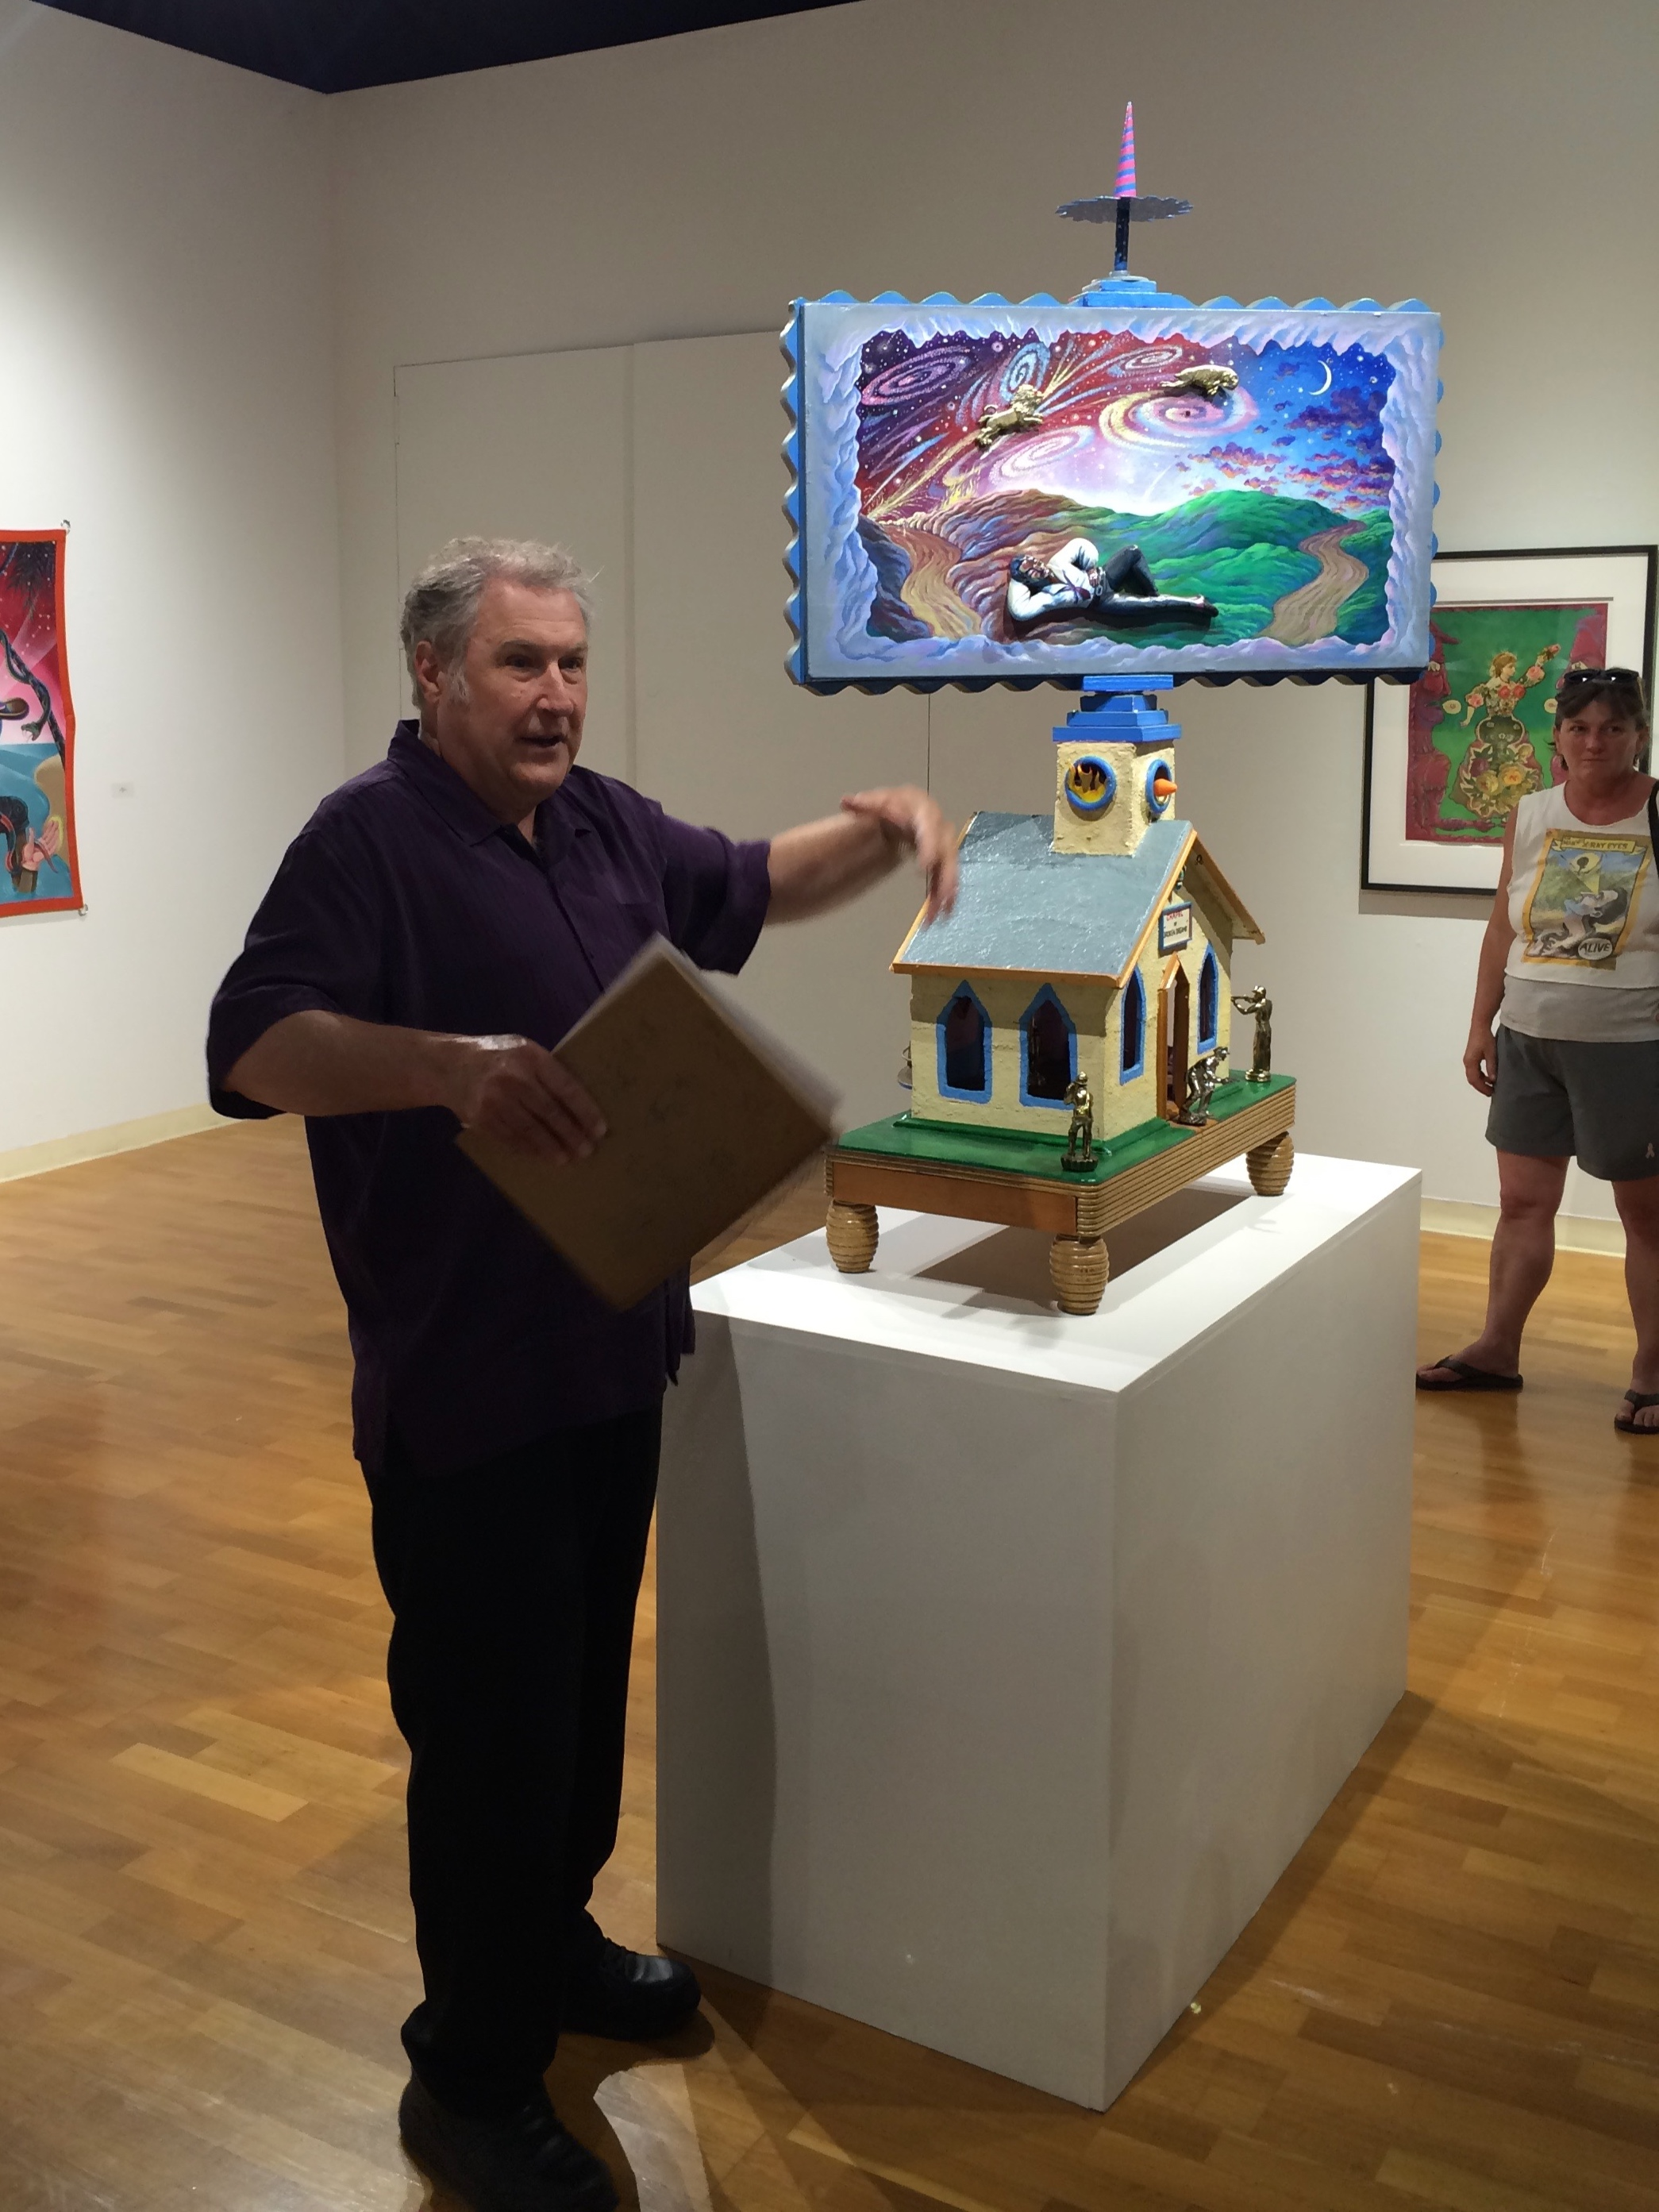 2015 , Glen speaking at a retrospective of his work in Bloomington, Illinois